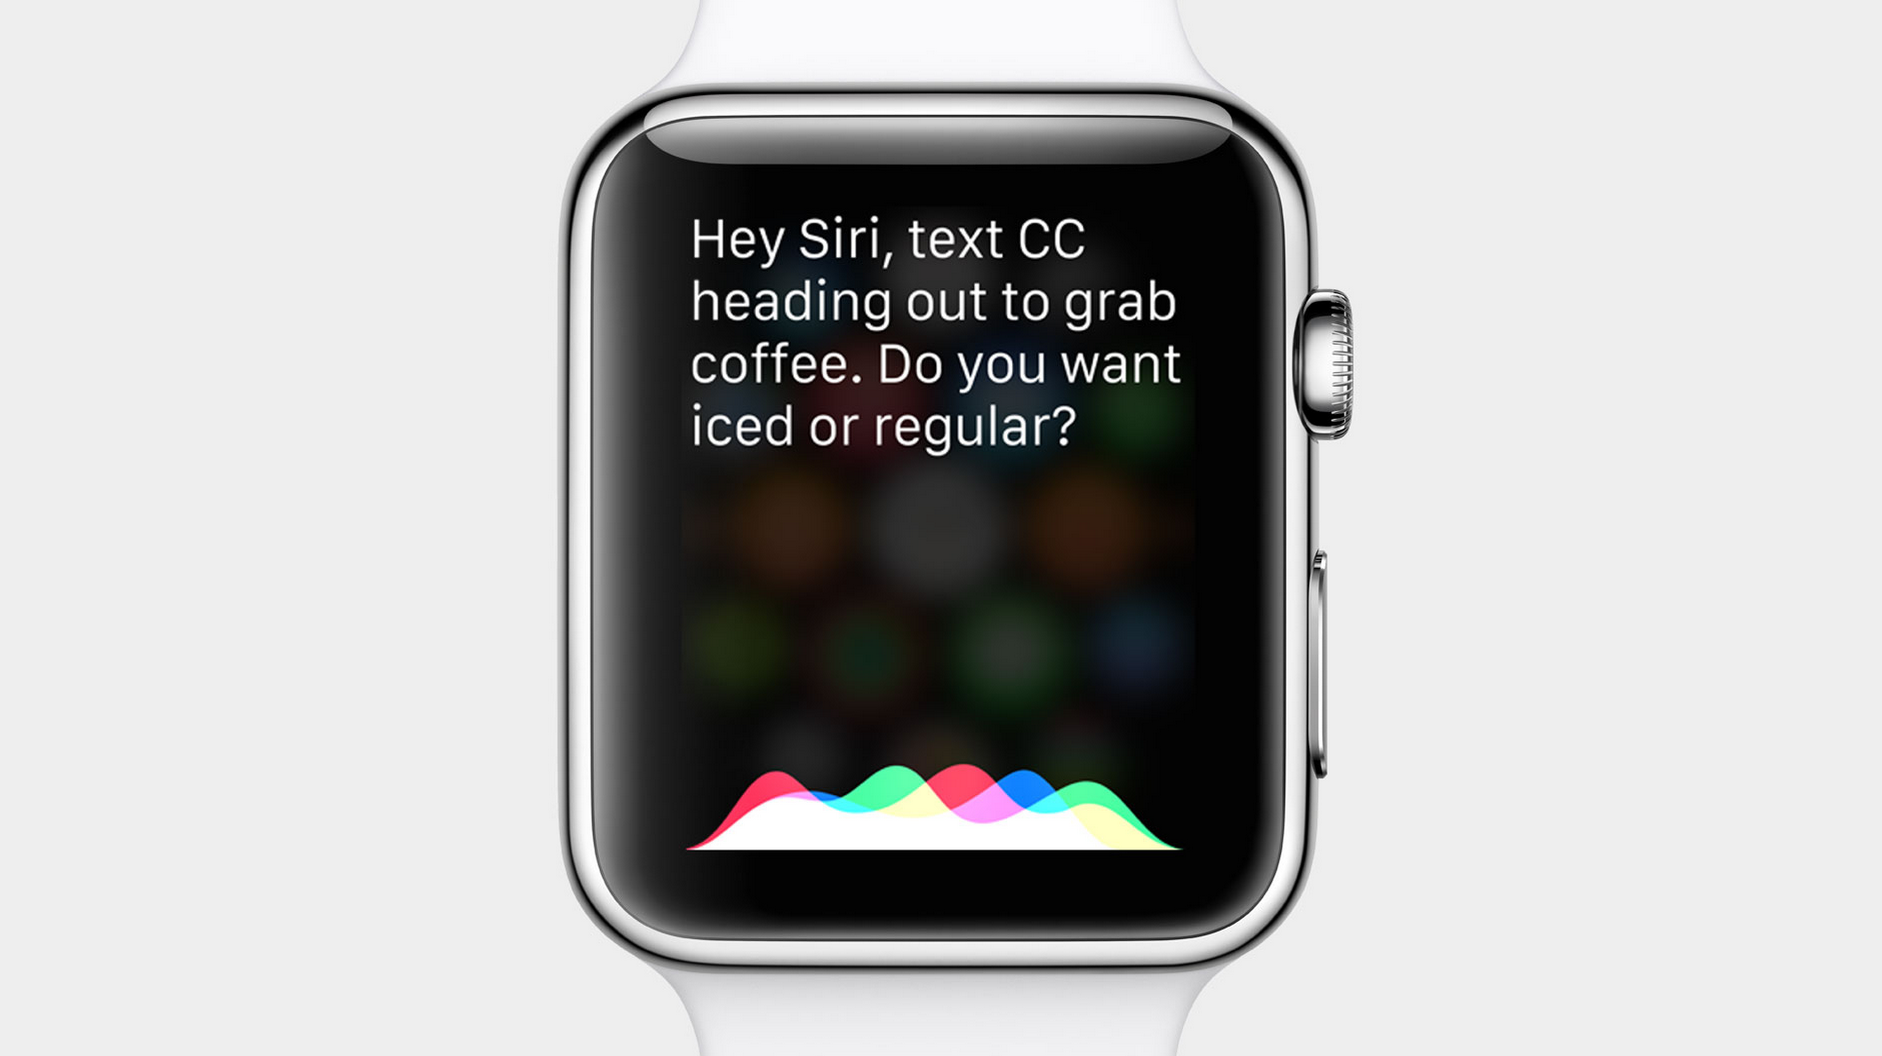 Apple Watch Hey Siri